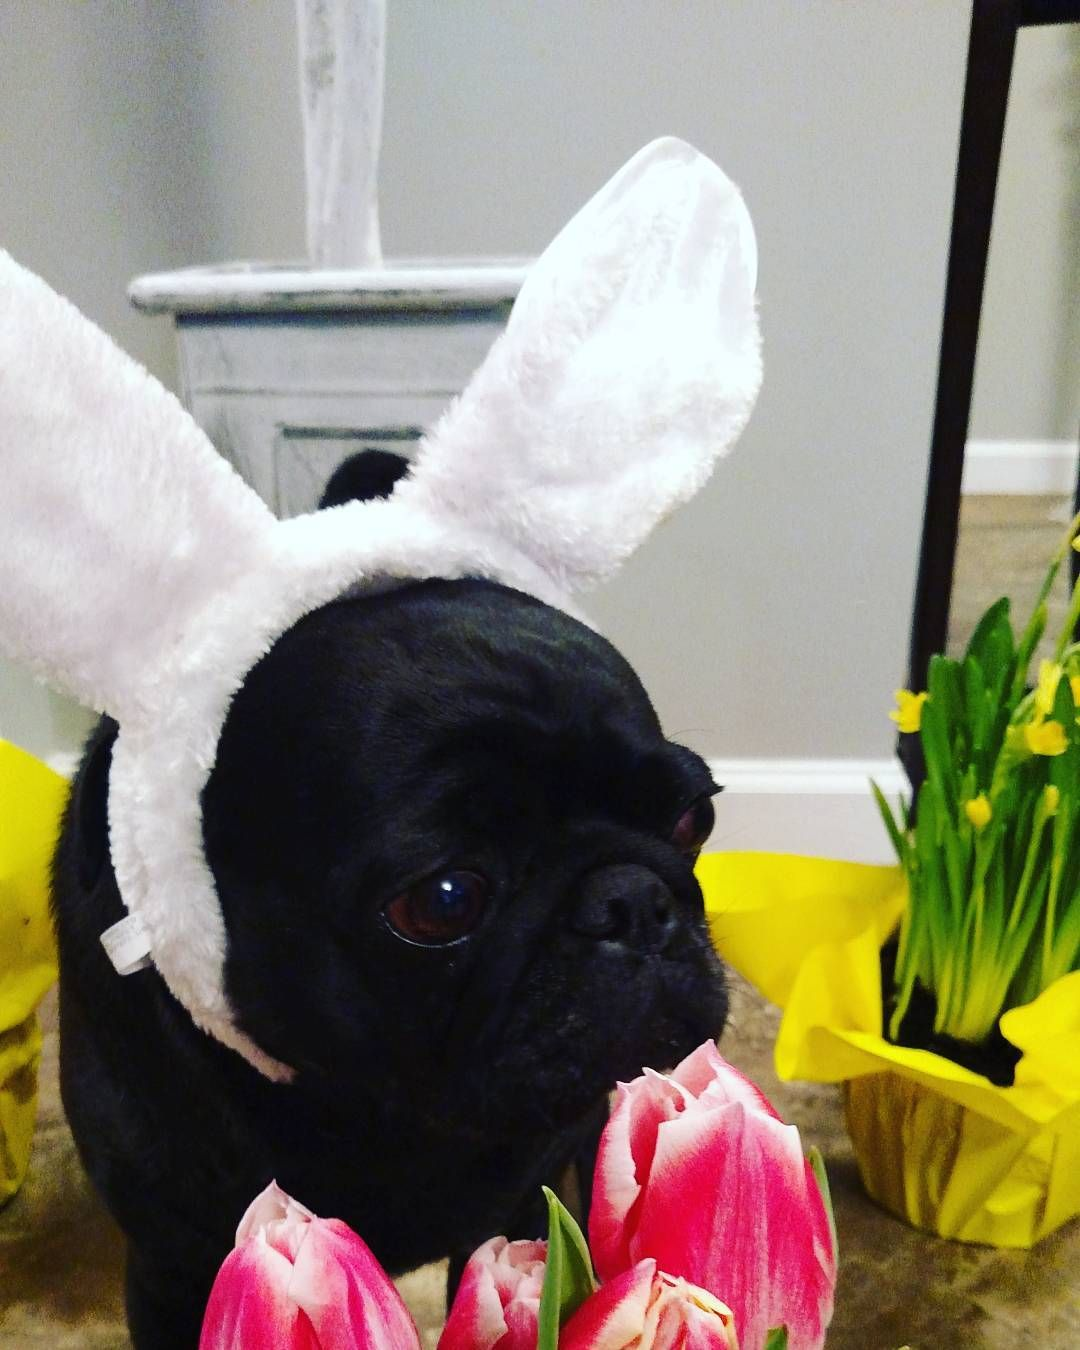 Happy Easter Instagram from me and my human Don't eat to many Easter treats or you will get  a stomach ache. #blackpugs #obsessedwithpugs #pugsofinstagram #pugworld #pugnation #pugworld #cutedog #instapug #pugstragram #thetomcoteshow #cutedog #snapwagdogs #dogoftheday #thetomcoteshow #pugbasement #buzzfeedanimals #flatnosedogsociety #pugsproud #pugsnotdrugs #pugbasement #pugchat #pugstragram ##dogsofinstagram #pugrules #pugandkisses #pugmania #pugoftheday #puglovers #pugrequest…